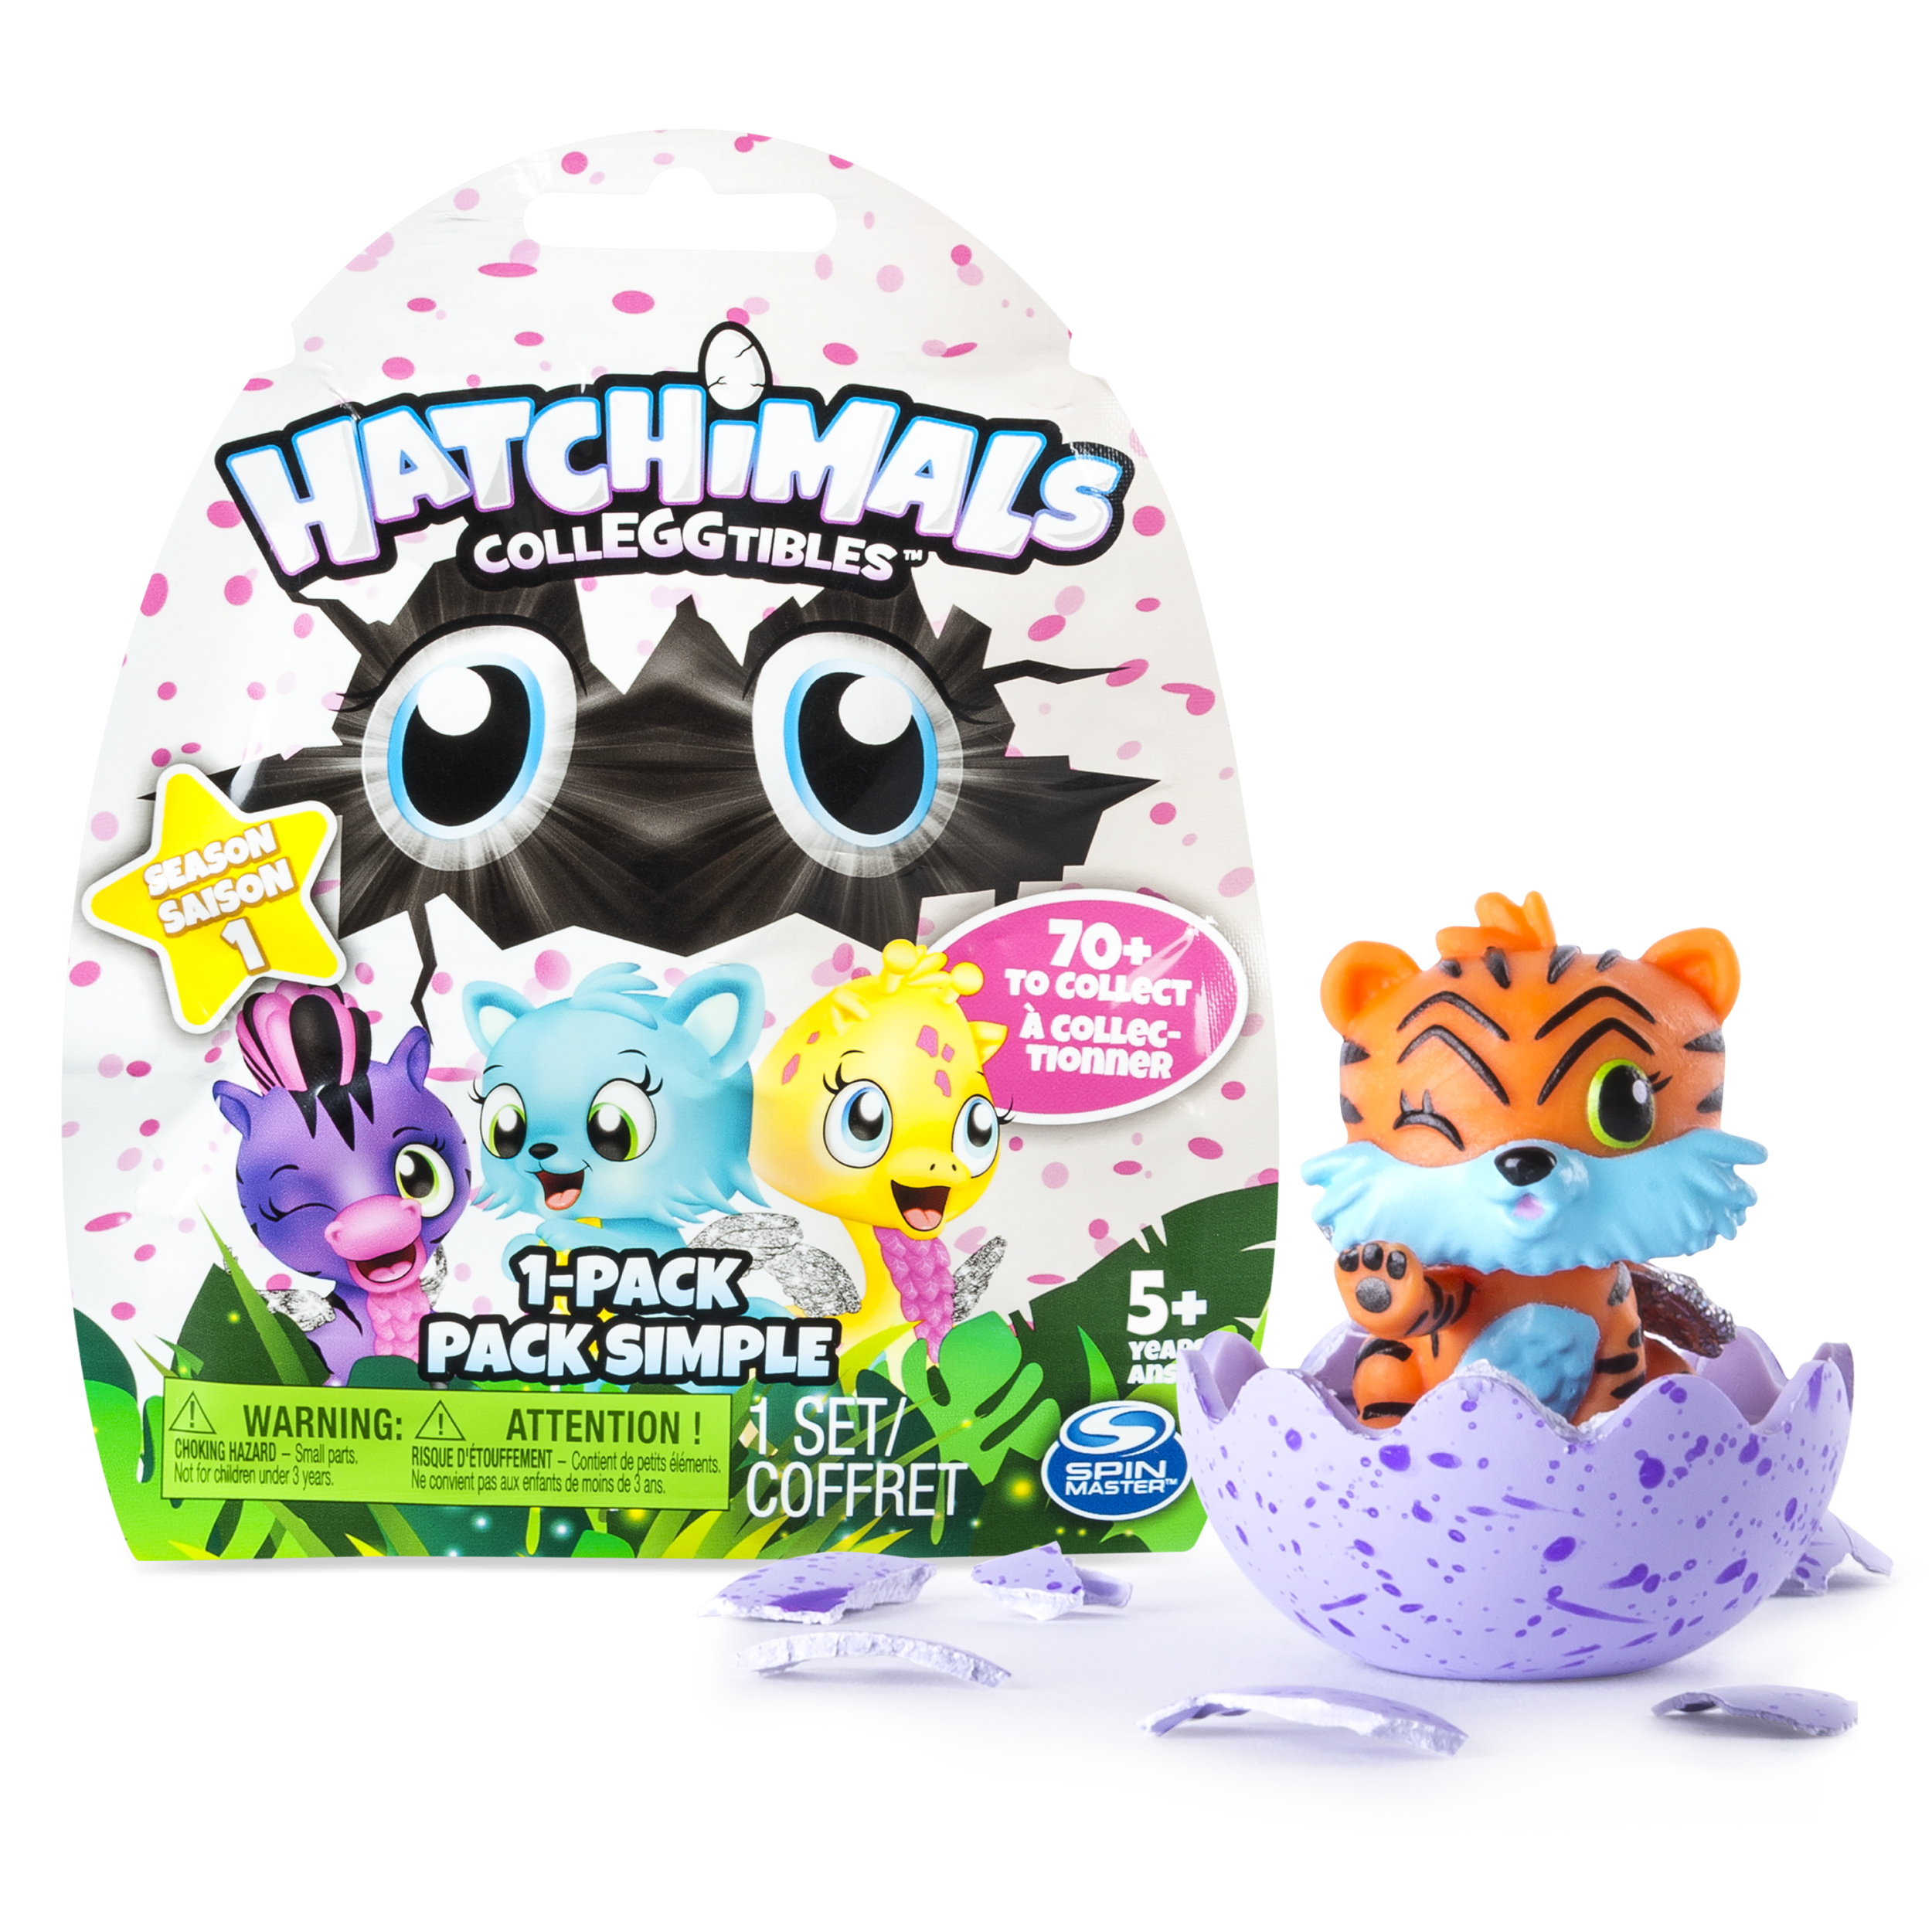 Hatchimals, CollEGGtibles, 1Pack (Styles & Colors May Vary) by Spin Master